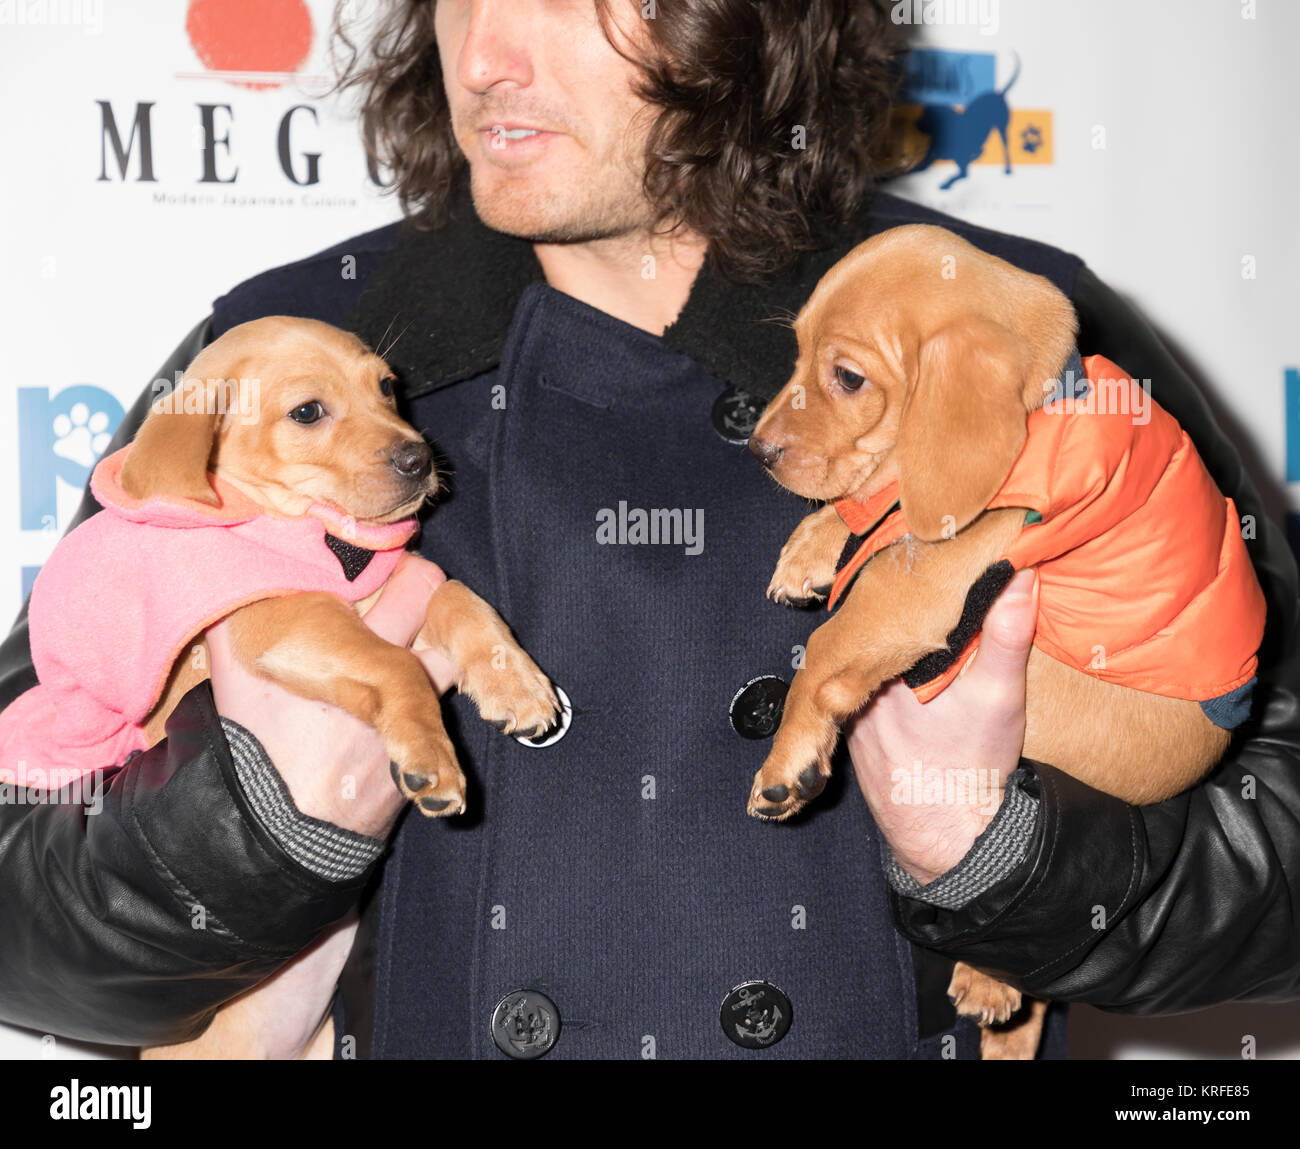 New York, NY, USA - December 19: Andrew Jenks with adoptable dogs attends Paw Prints 1st Annual Paw-liday party - Stock Image